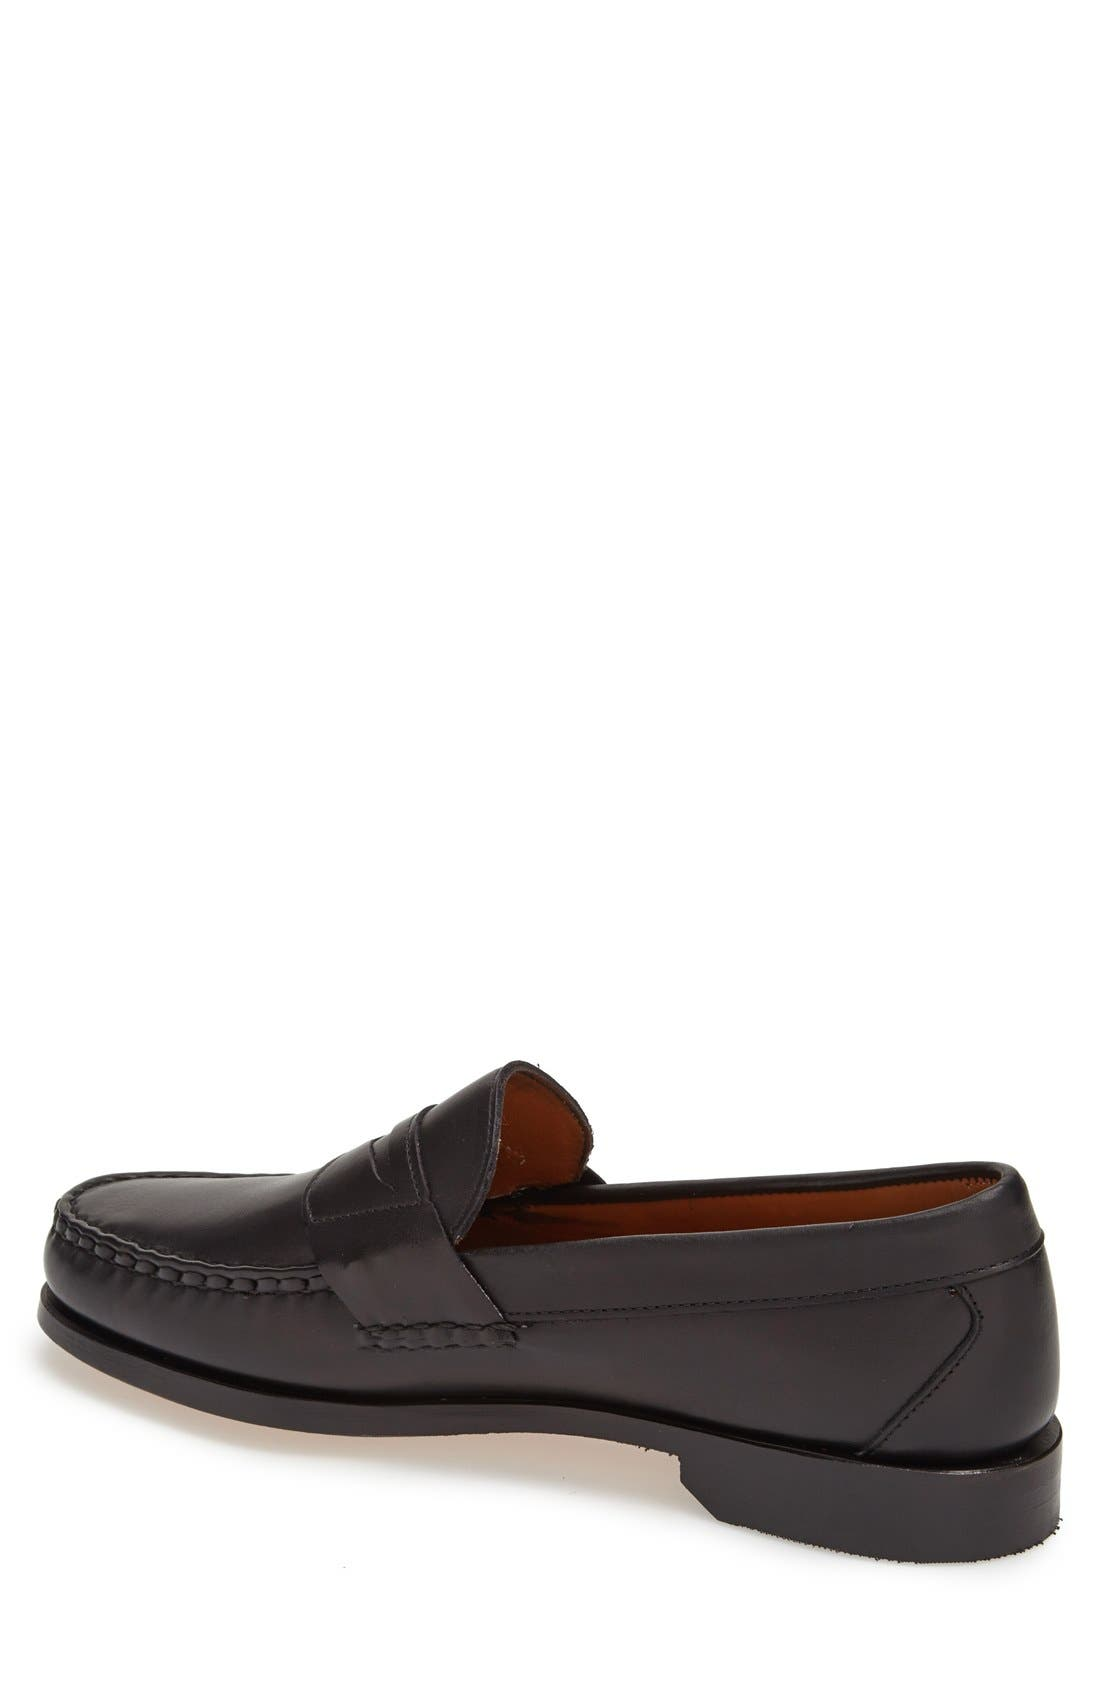 'Cavanaugh' Penny Loafer,                             Alternate thumbnail 3, color,                             BLACK LEATHER